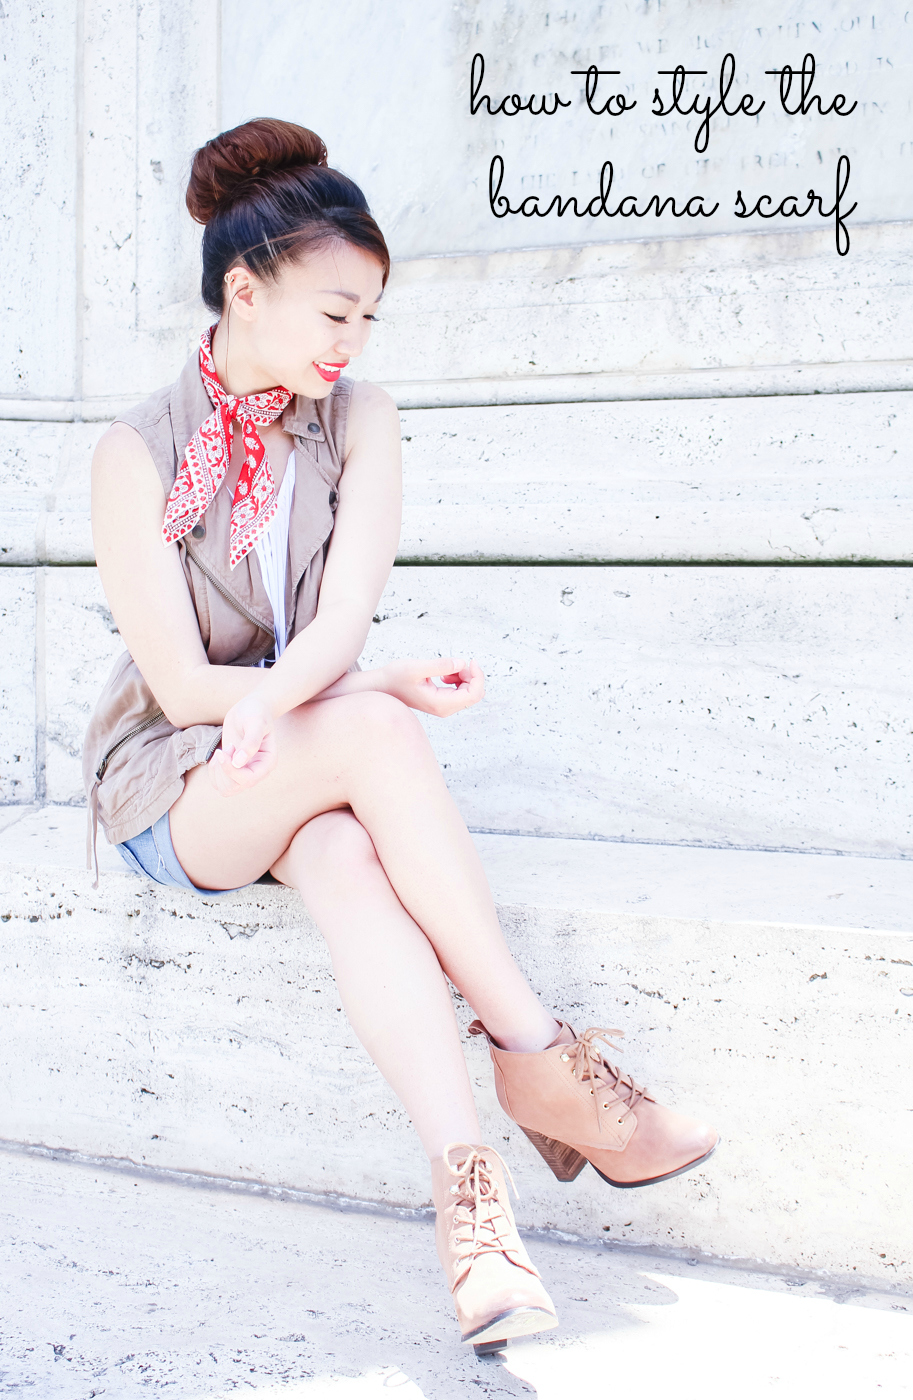 How to style the bandana scarf | The Chic Diary